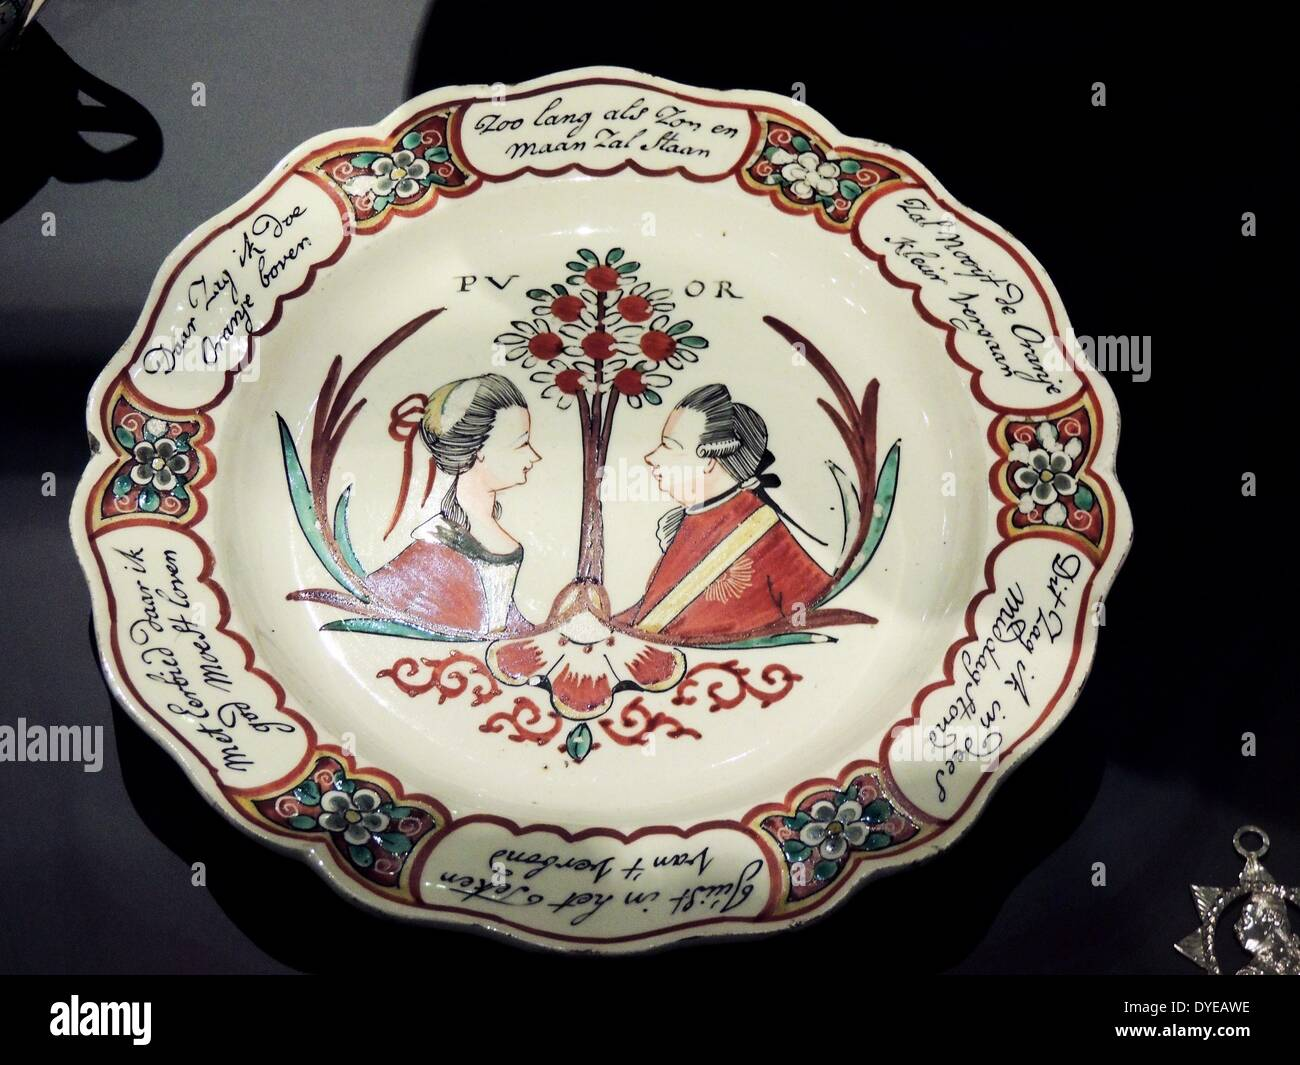 Plate with orange trees and portraits of William V and Wilhelmina of Prussia. Leeds, c1780-1795 painted decoration - Stock Image